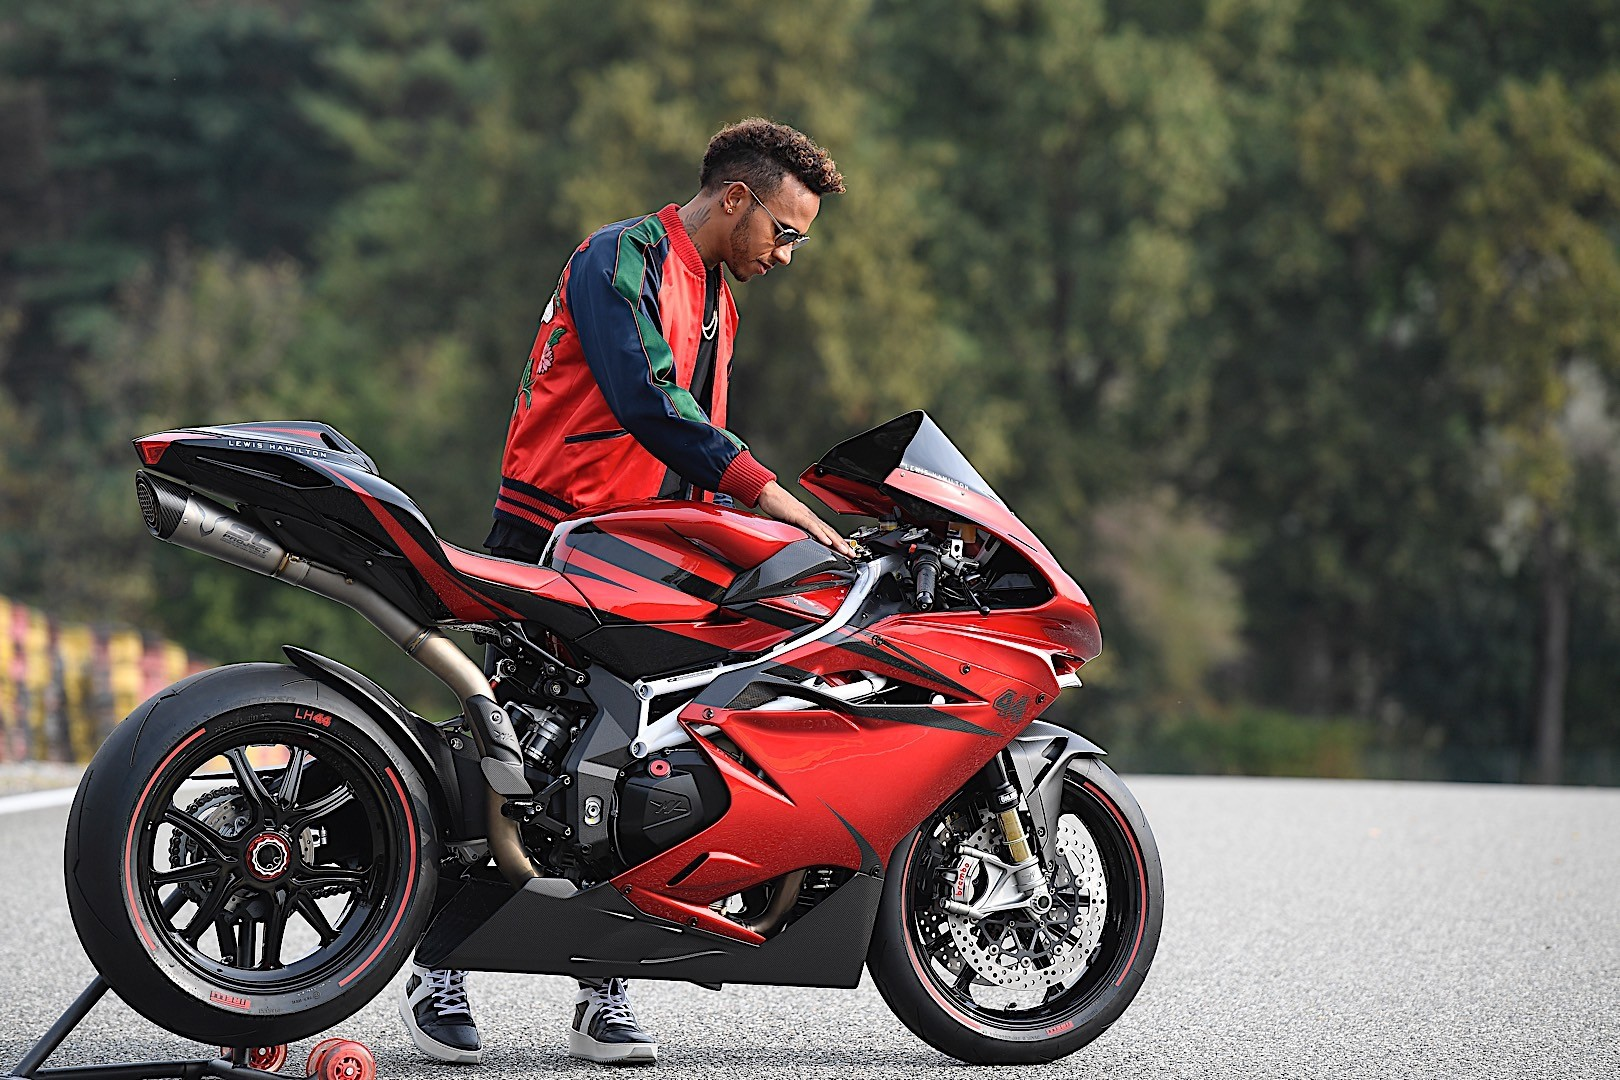 Ducati 1299 Panigale Cafe Racer Concept Looks As Extreme